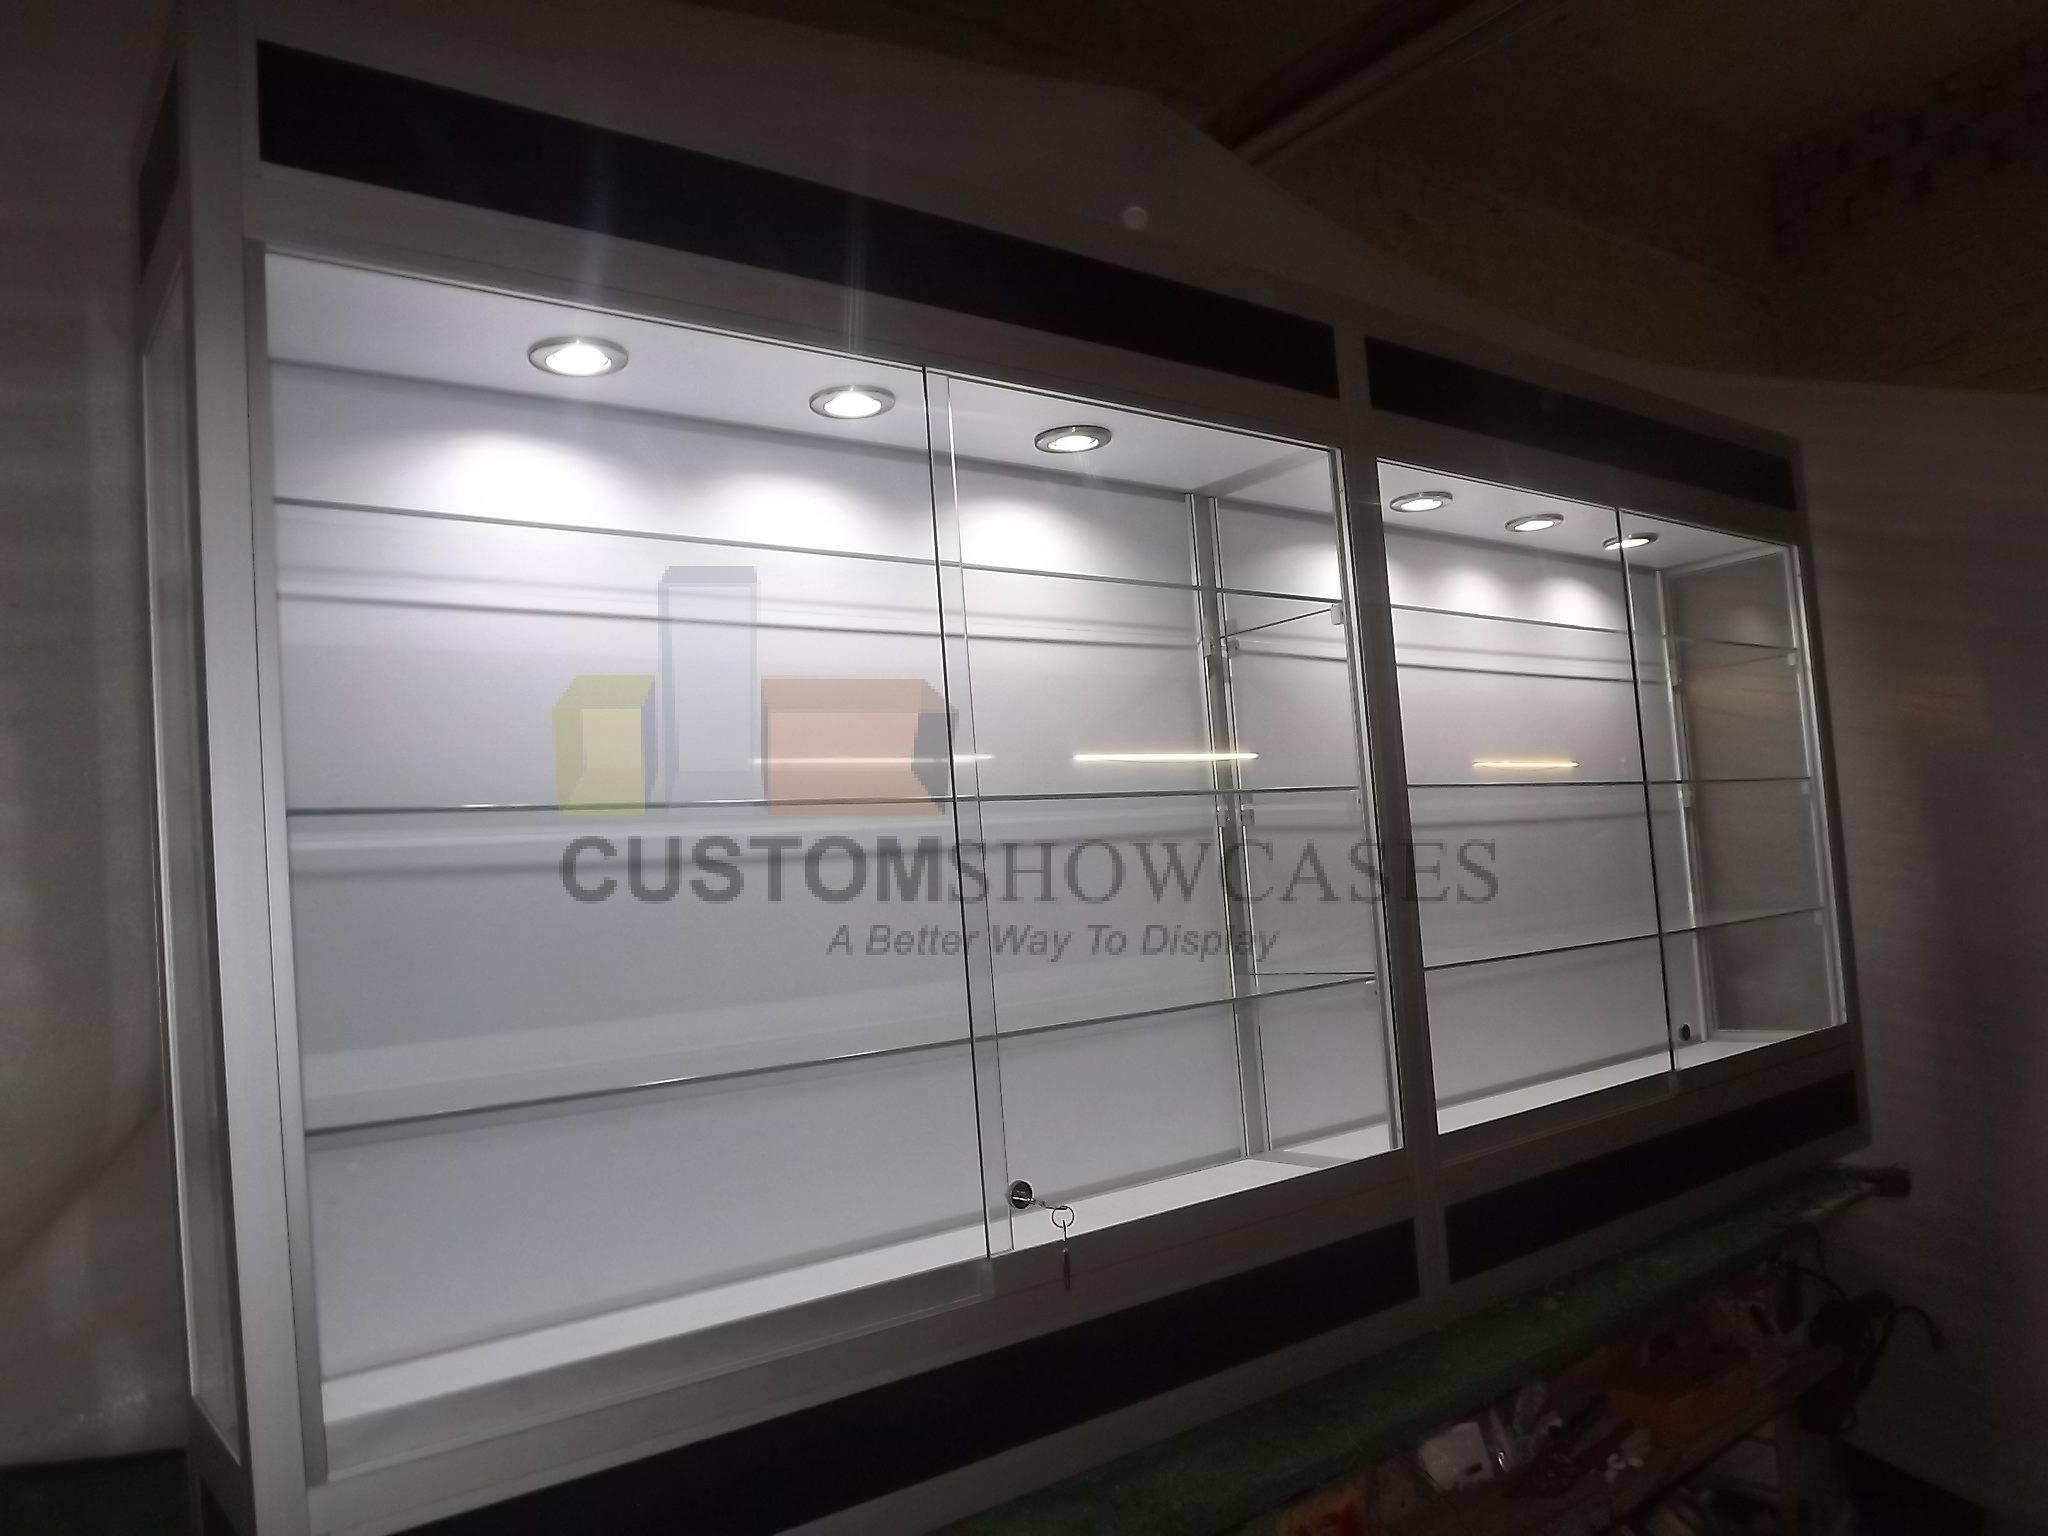 Wall Mounted Display Case Wall Mounted Display Cases Archives Custom Display Projects Blog